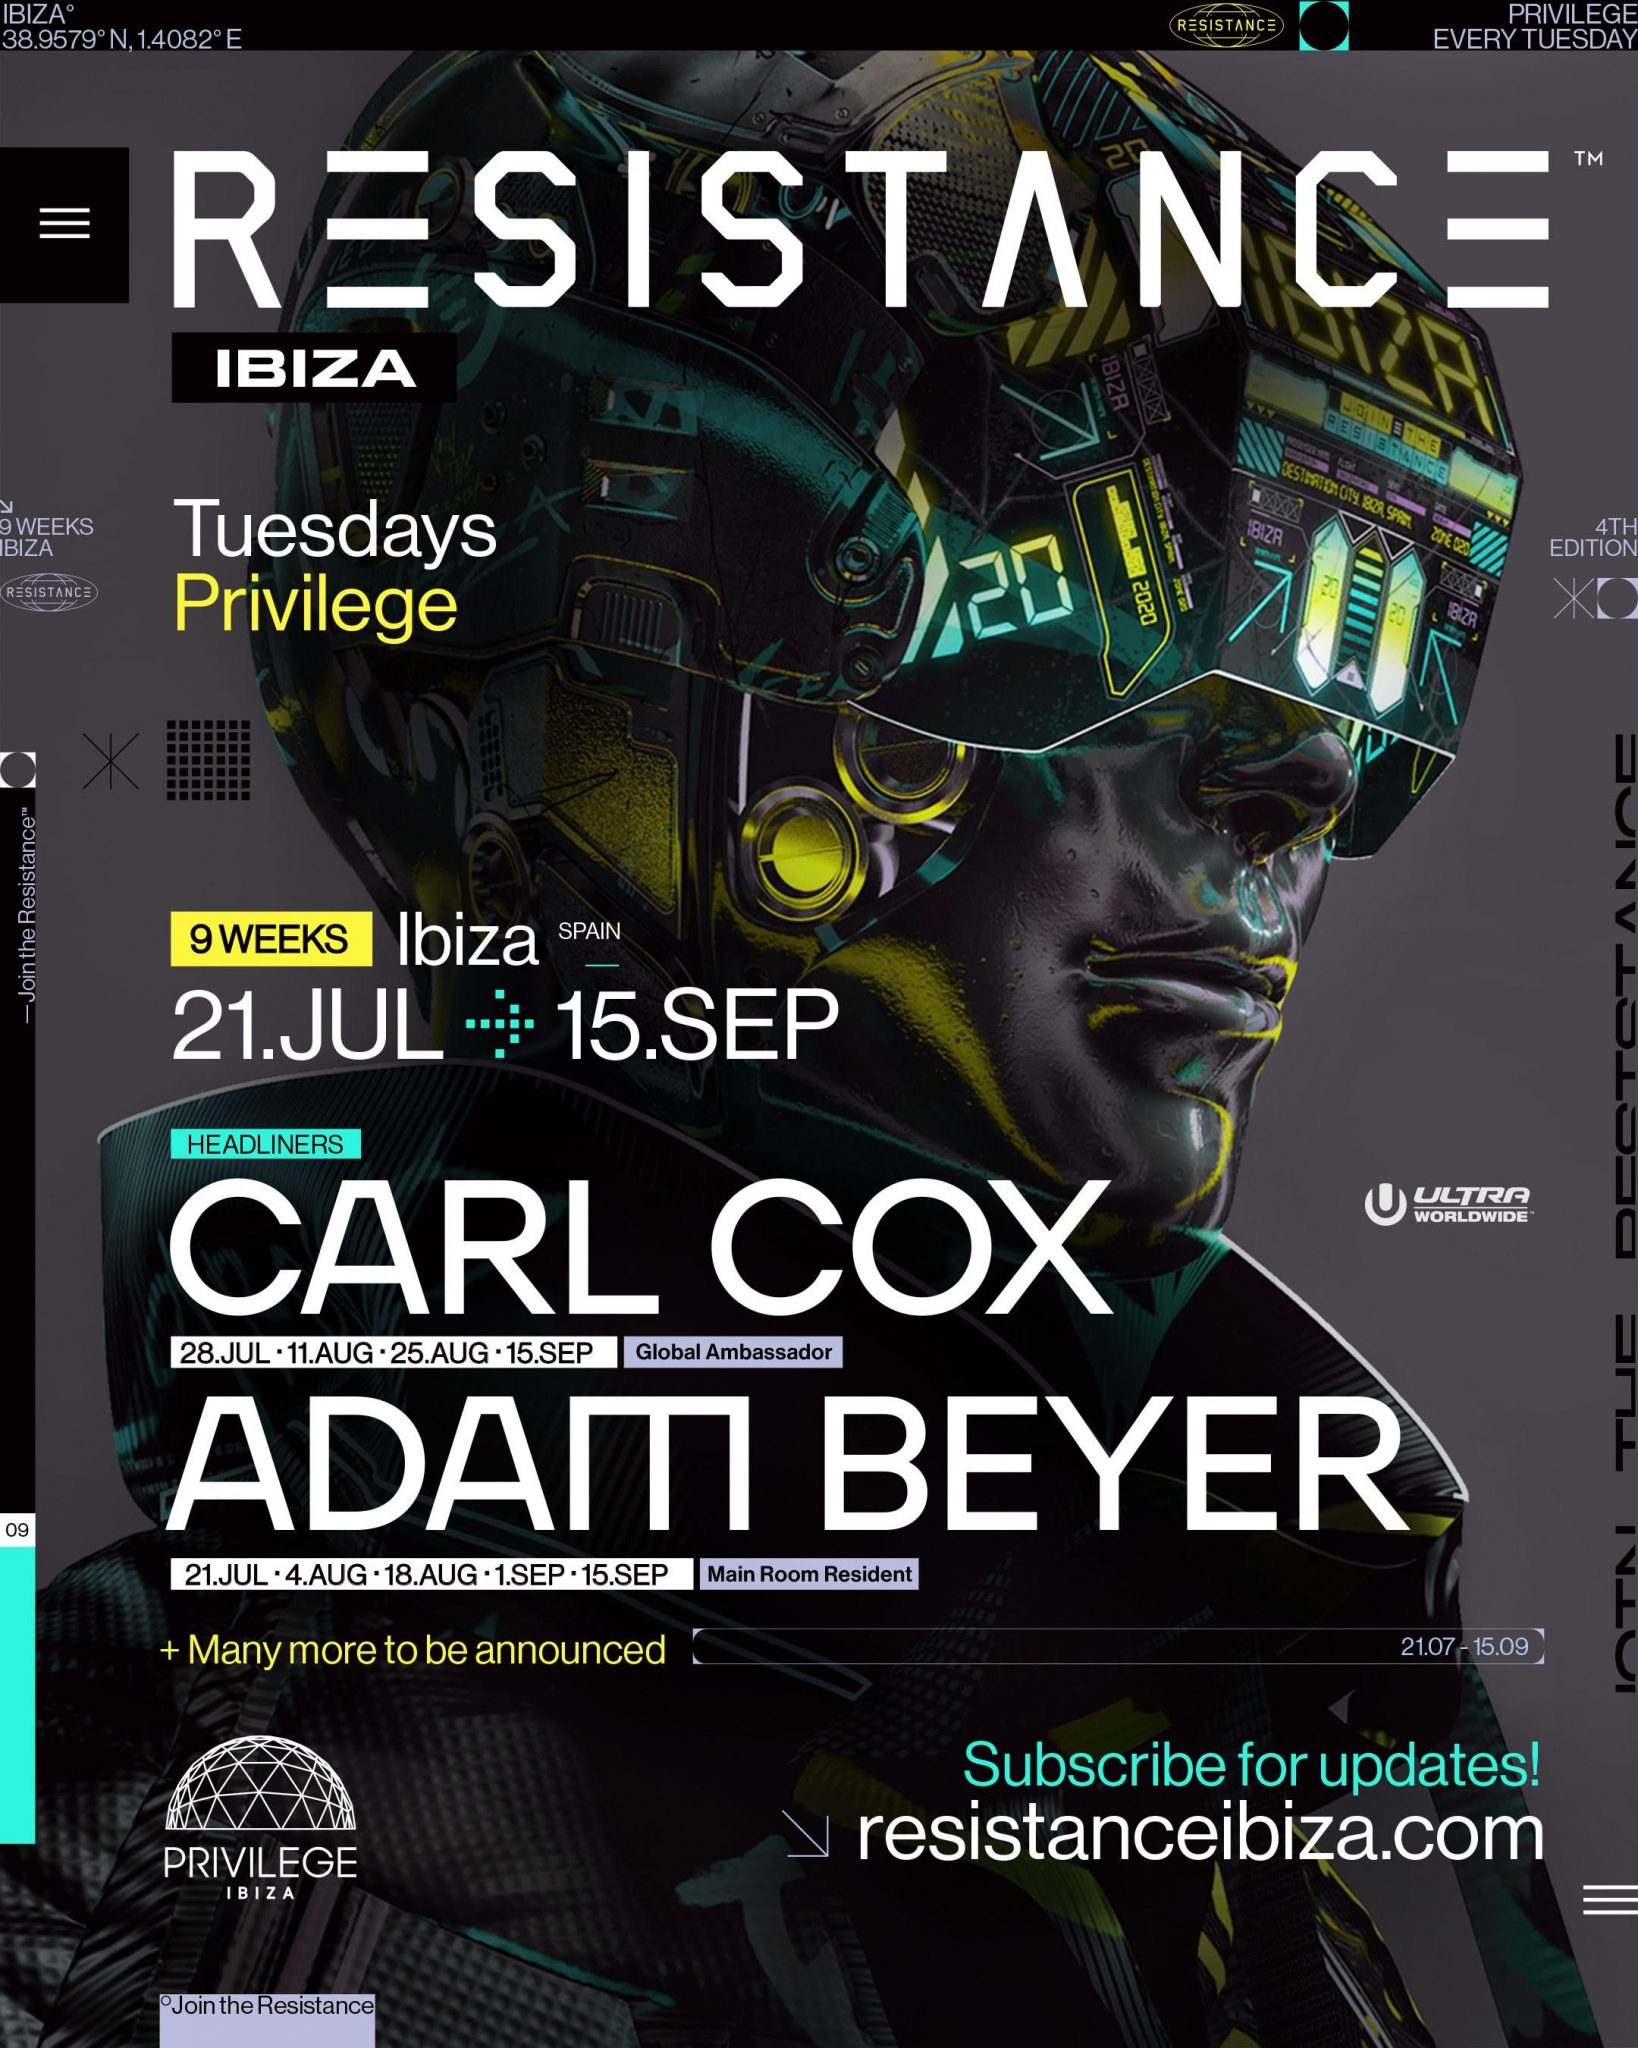 RESISTANCE Ibiza Returns for 2020 and Announces Carl Cox & Adam Beyer as First Acts ile ilgili görsel sonucu